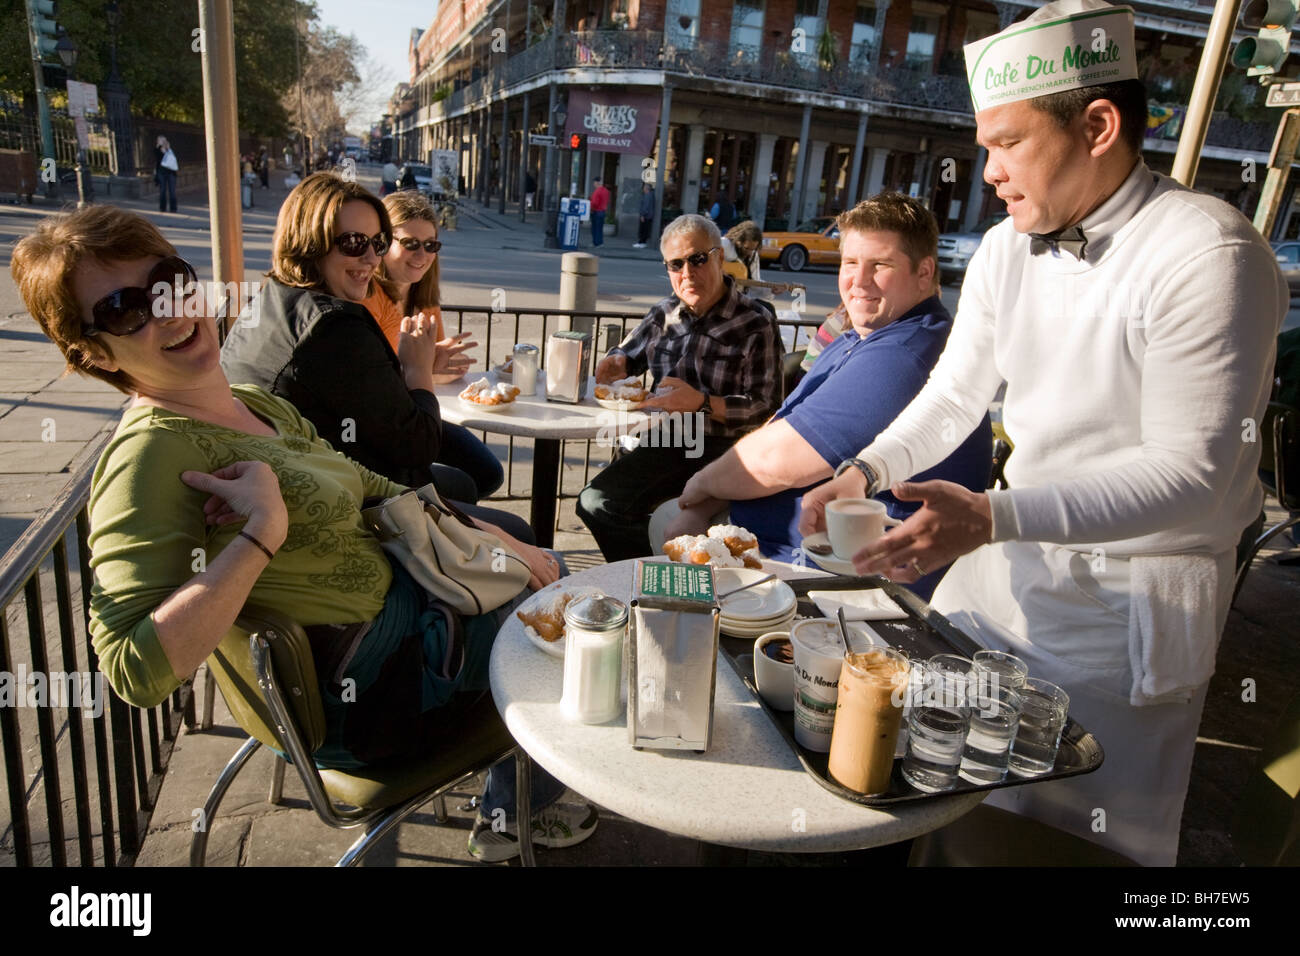 Waiter serving beignets and coffee at Cafe du Monde New Orleans, Louisiana - Stock Image